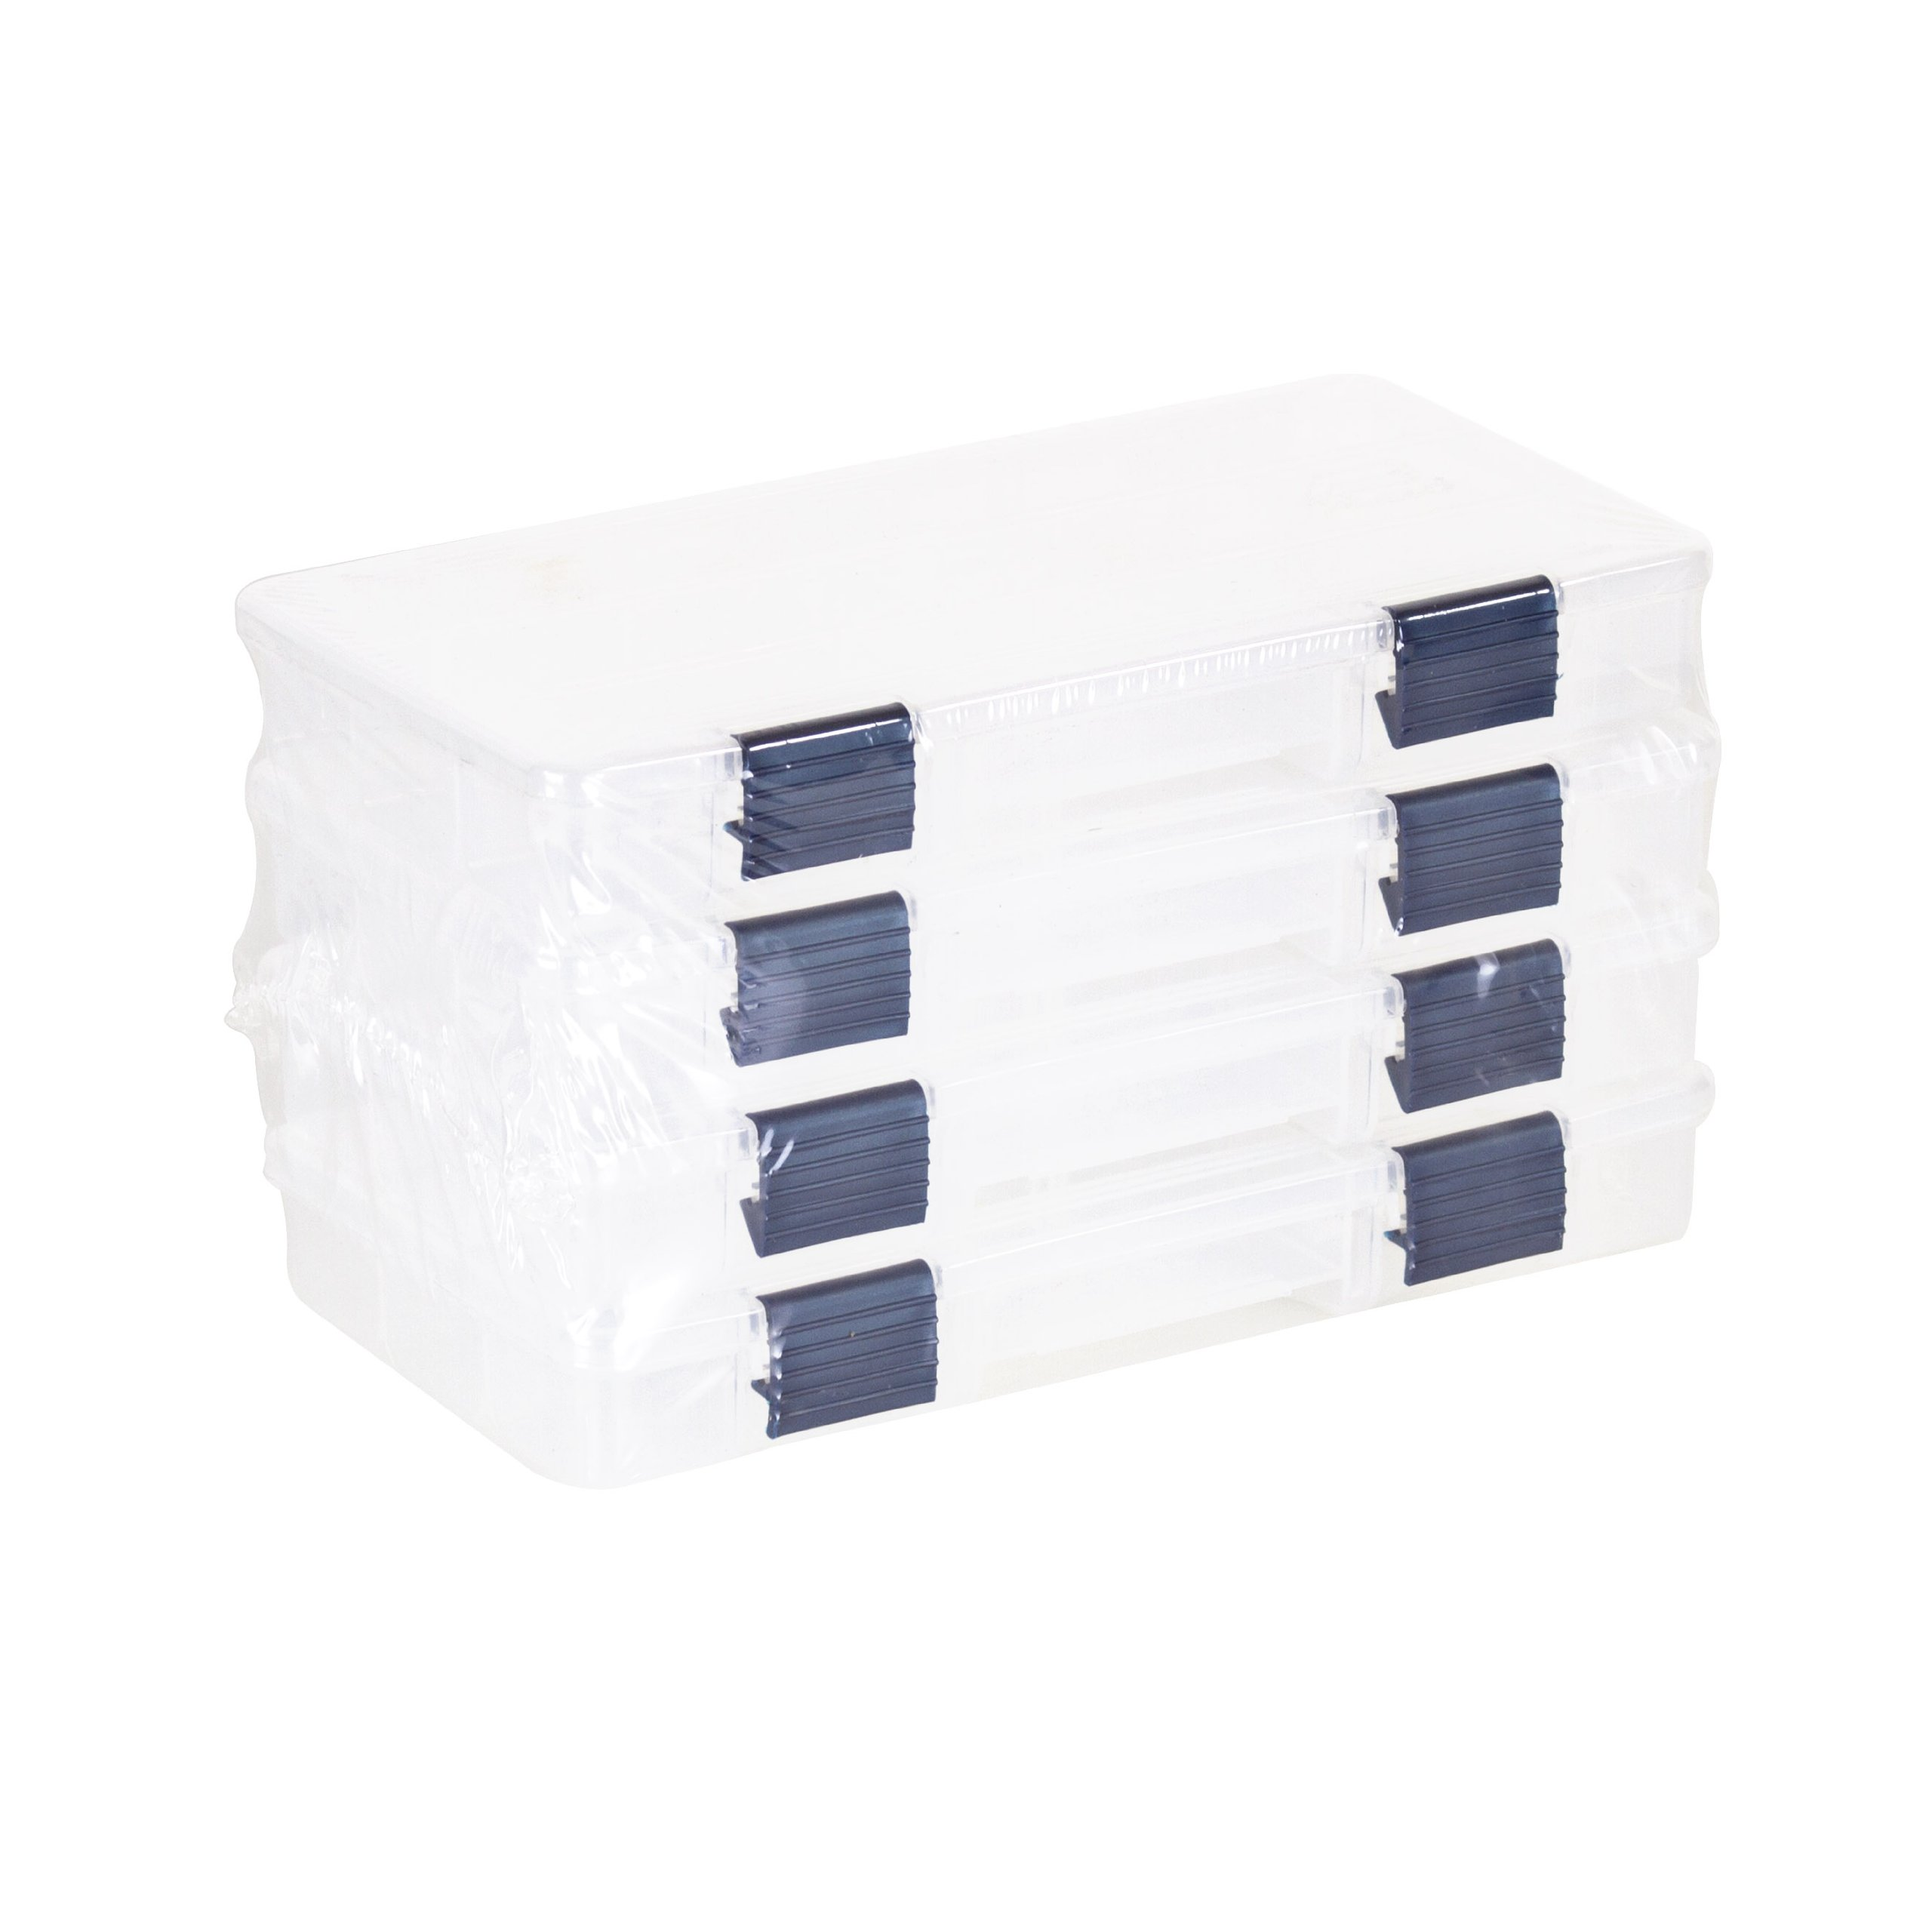 Plano Tackle Boxes,4 pack of  3500 Prolatch Stowaway Tackle Utility Boxes,  Fishing Tackle Storage